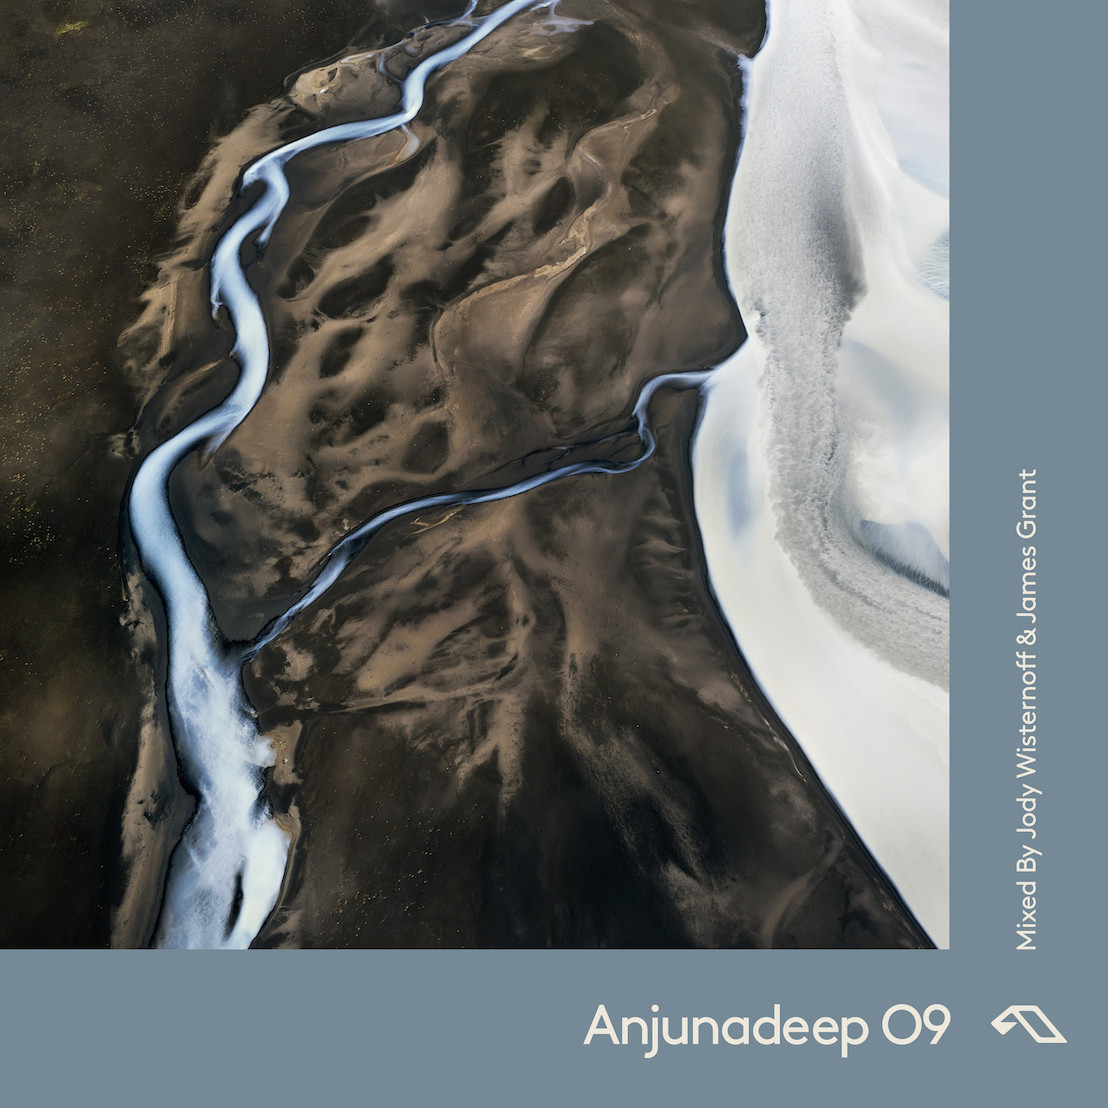 Anjunadeep Releases Their 9th Compilation